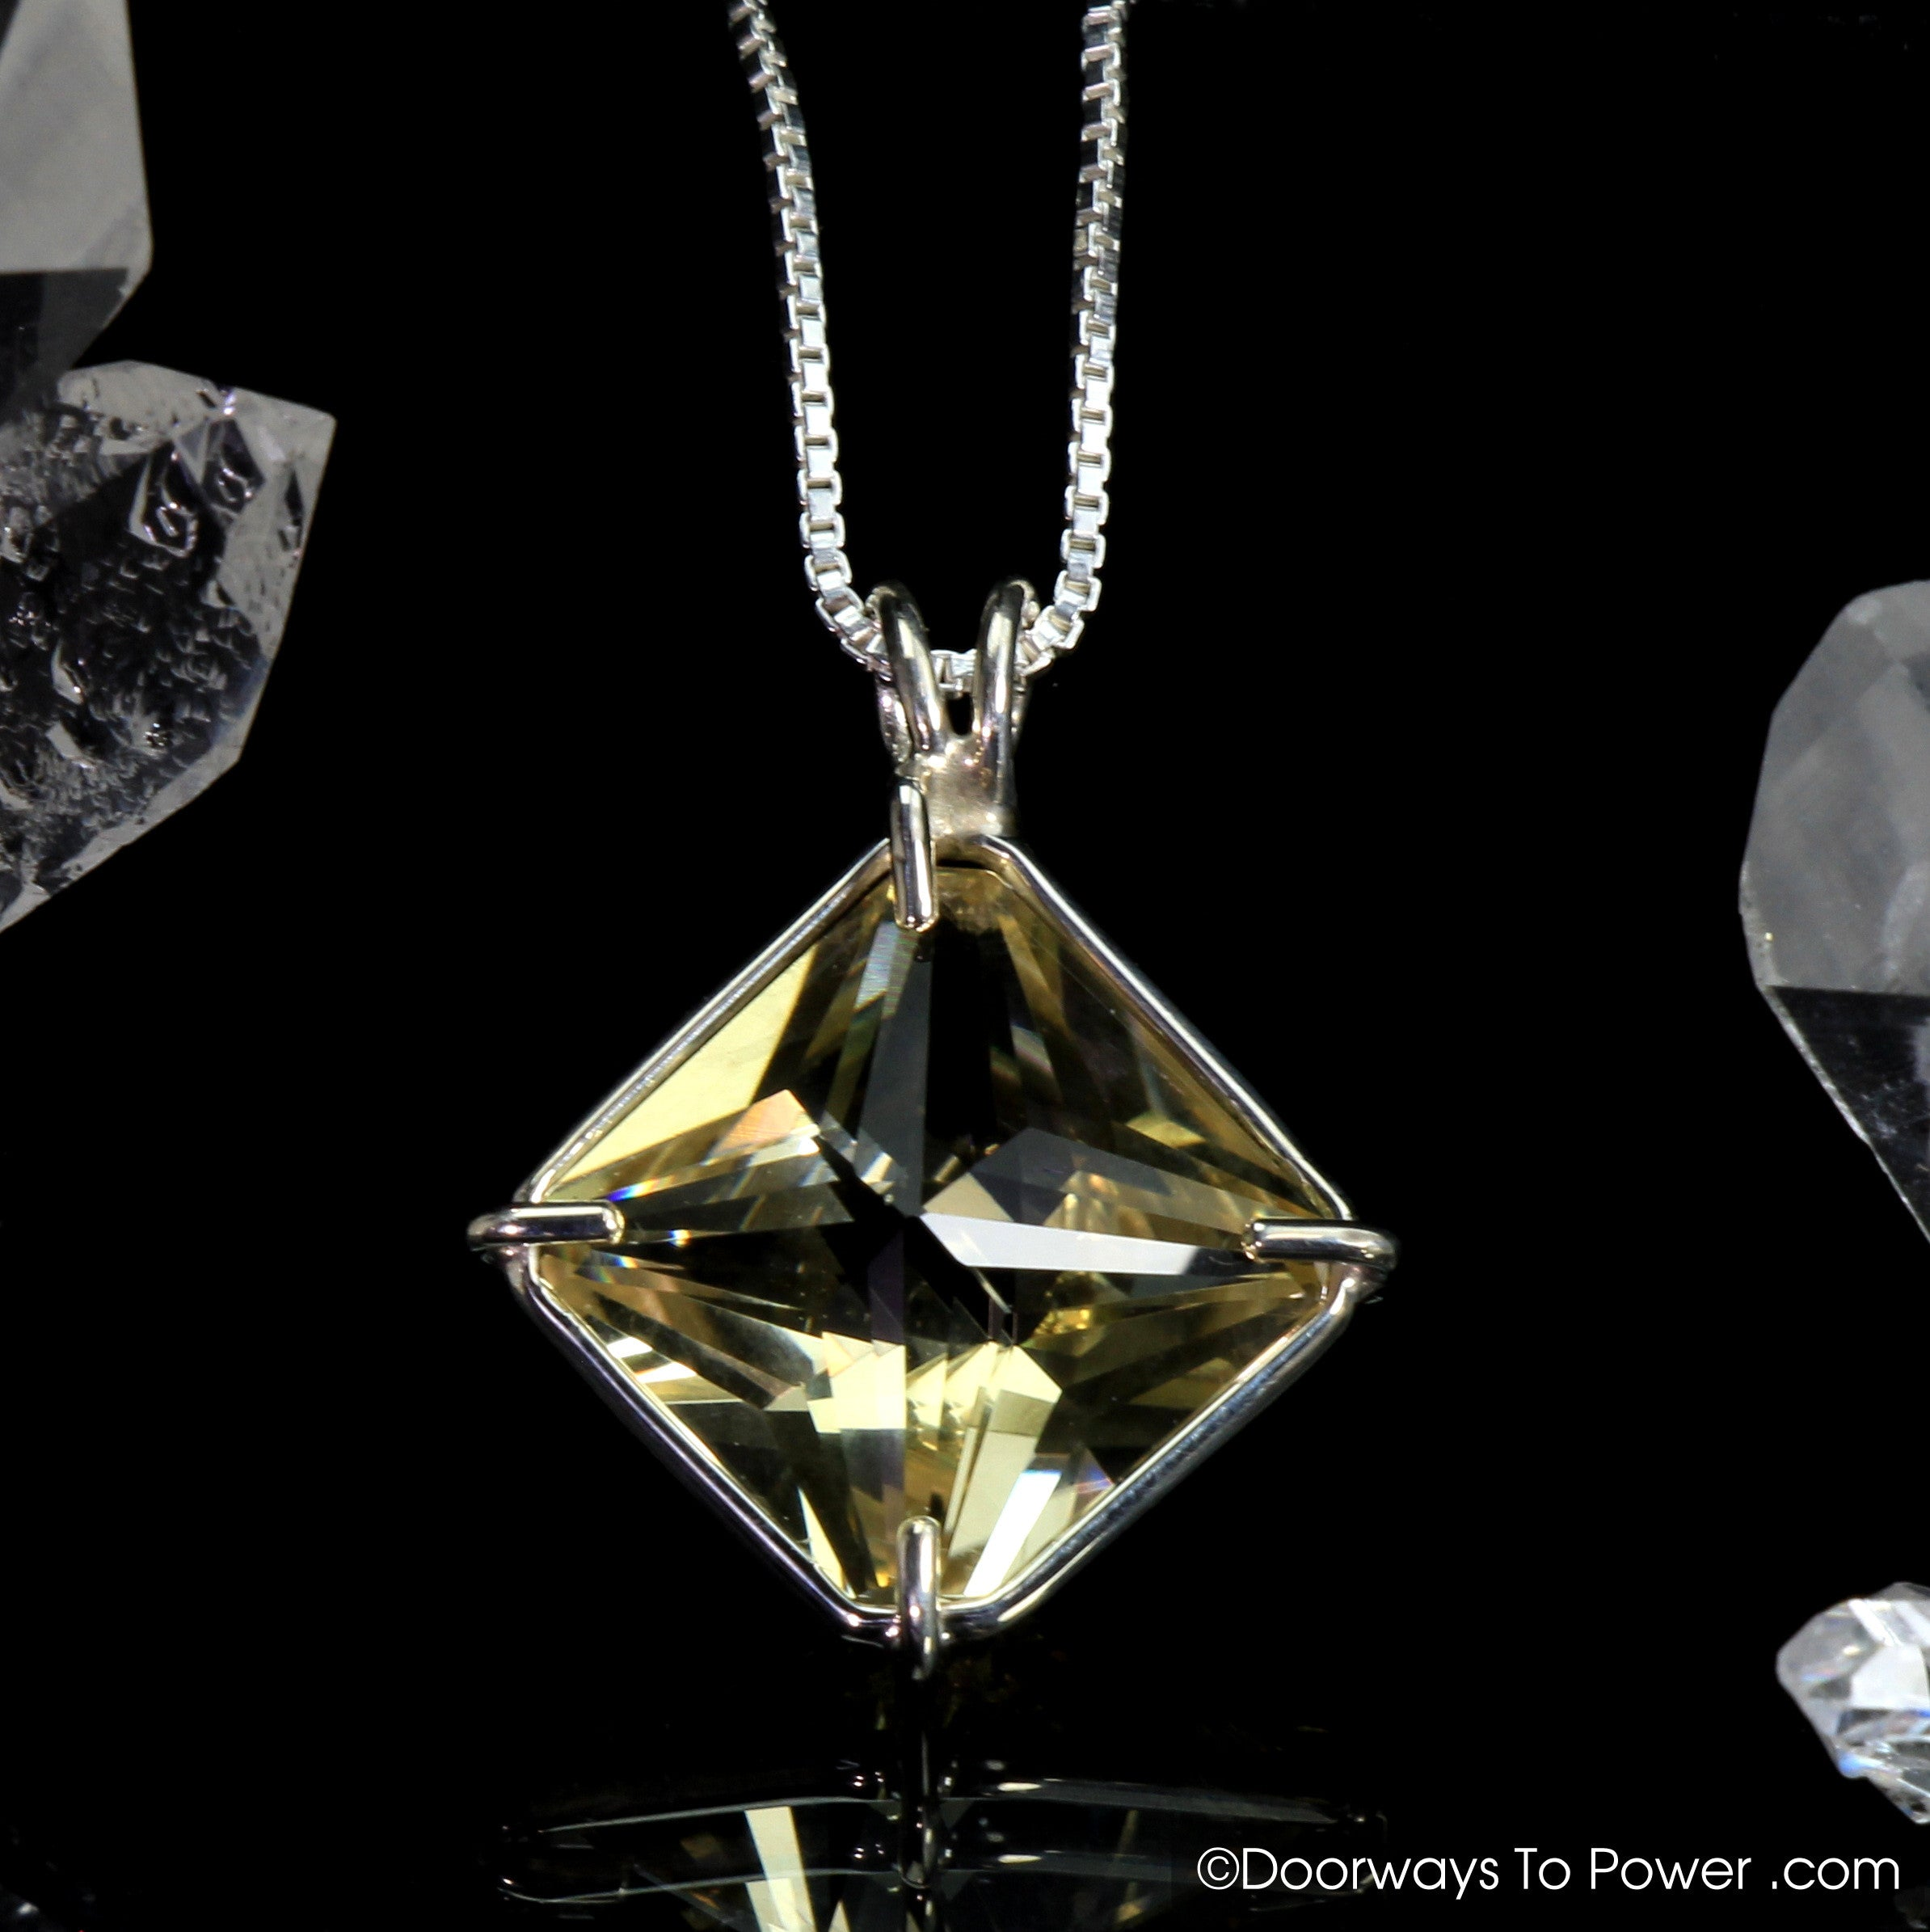 triangle substantial group atlantean quartz power pin in equilateral pendant